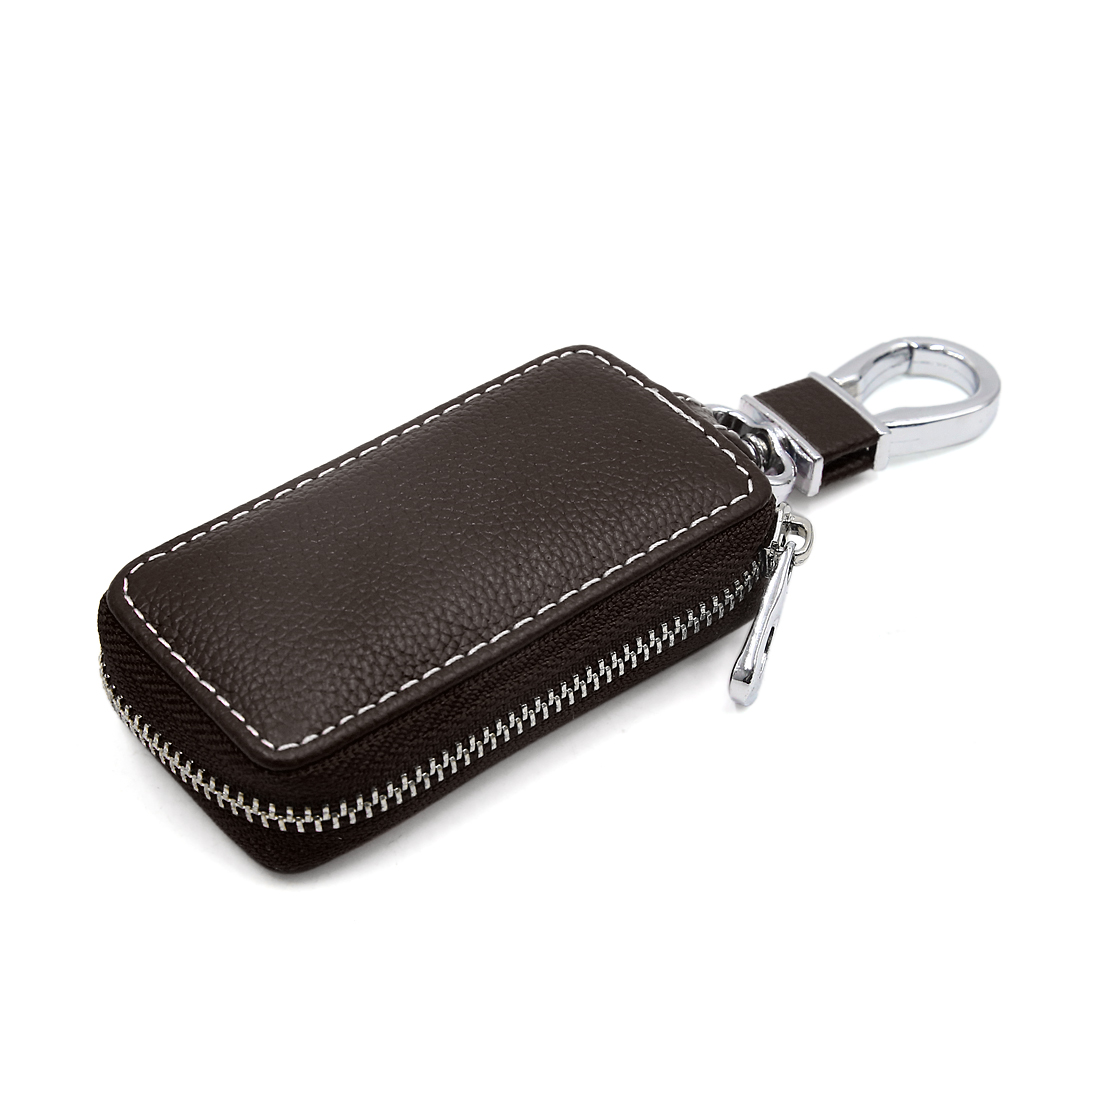 Deep Brown Faux Leather Rectangle Chain Holder Zipper Bag for Car Remote Key - image 3 of 3